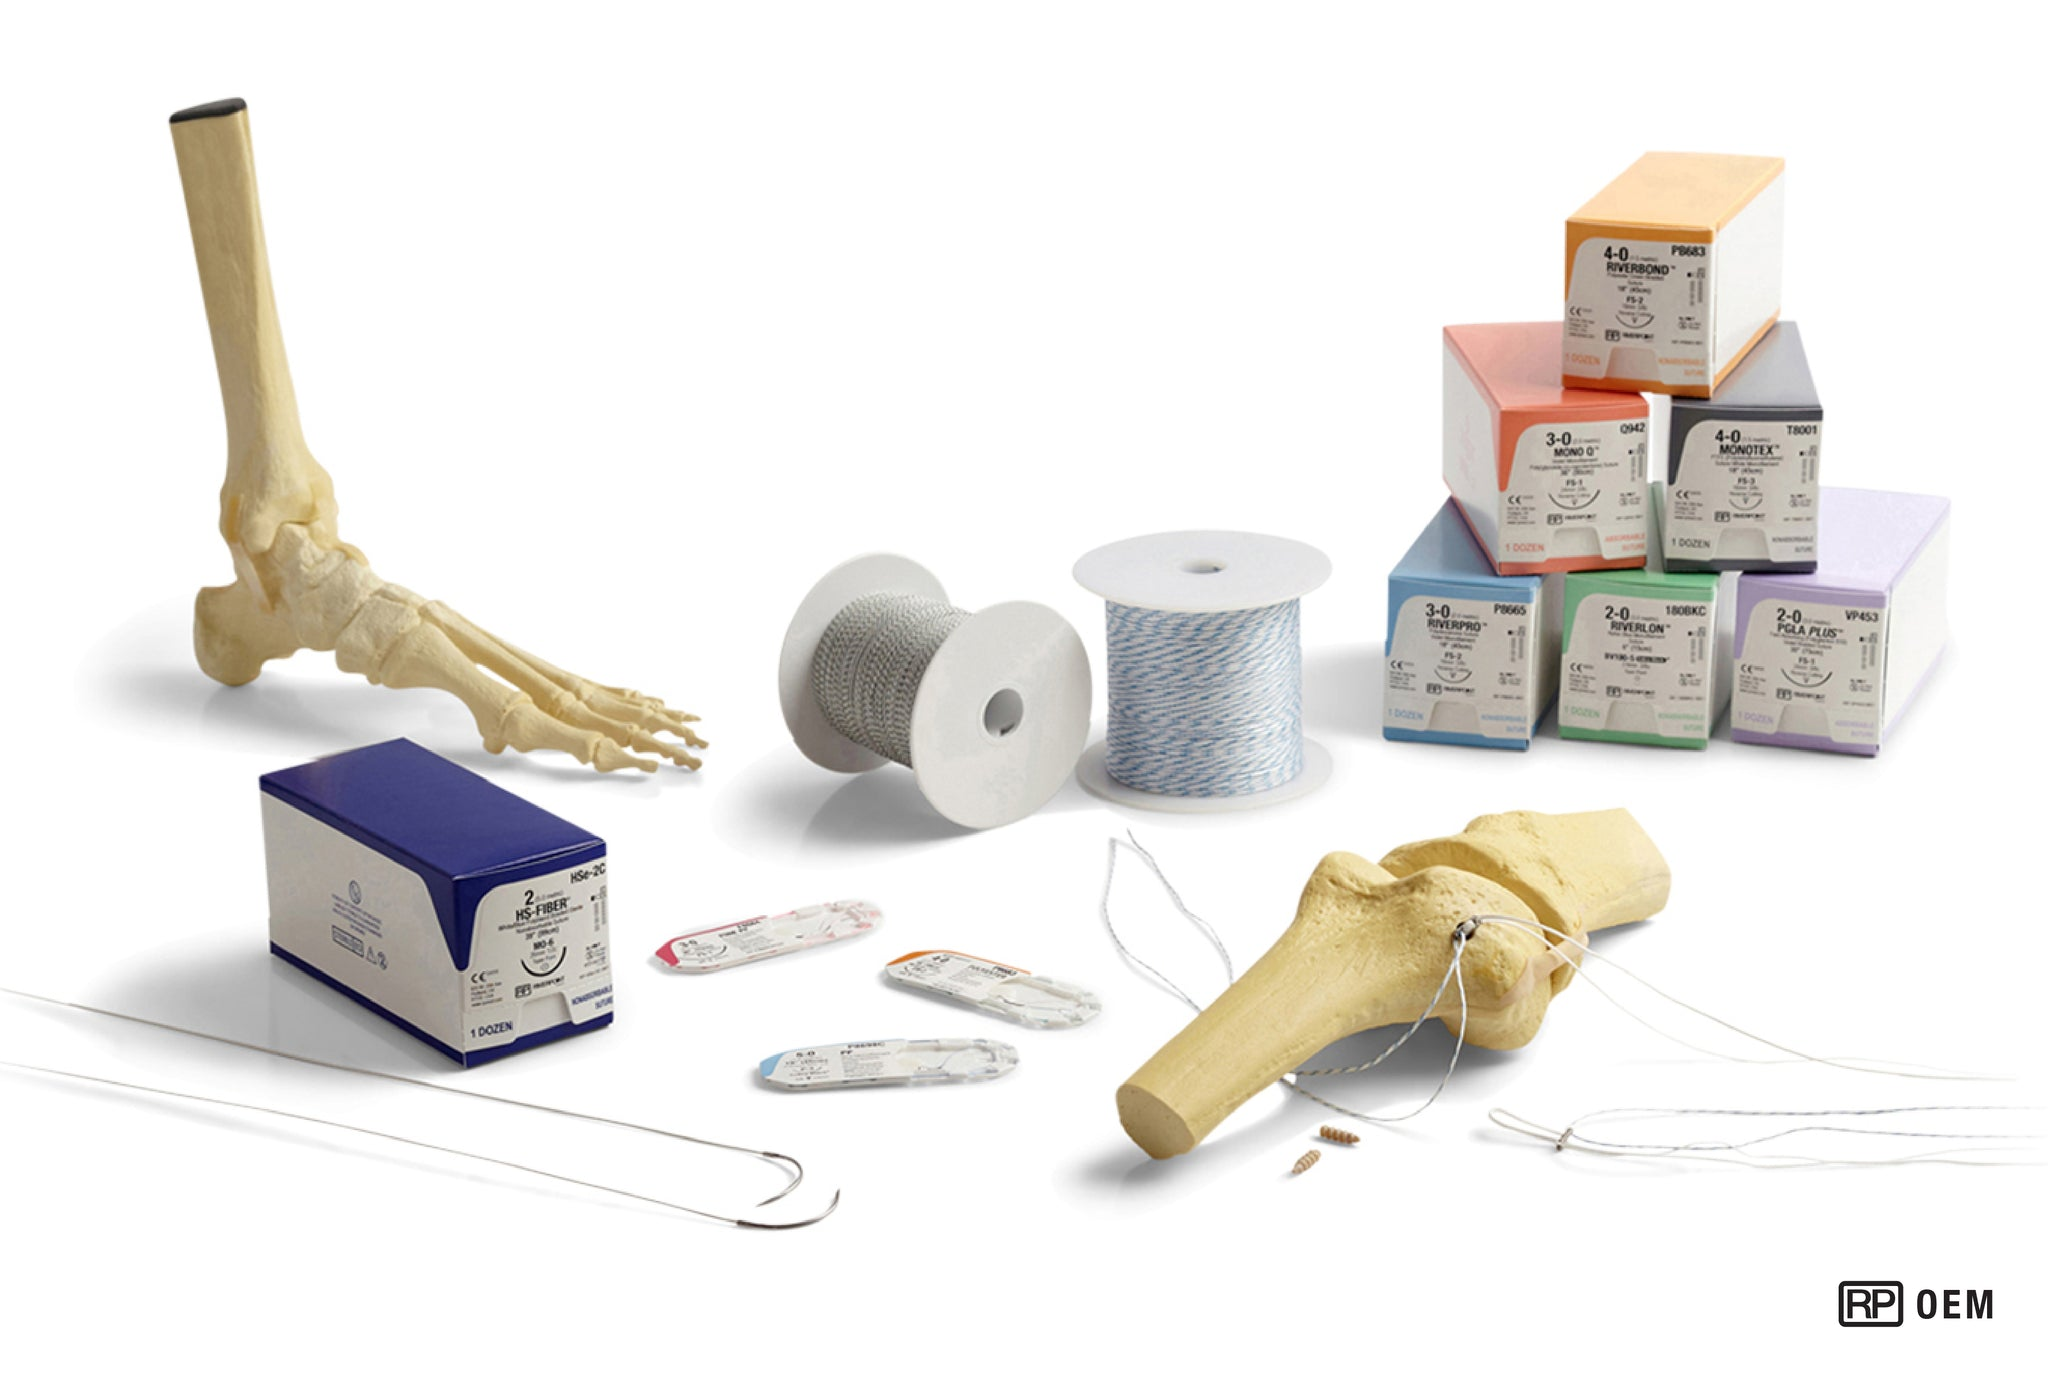 OEM Medical Device Contracting